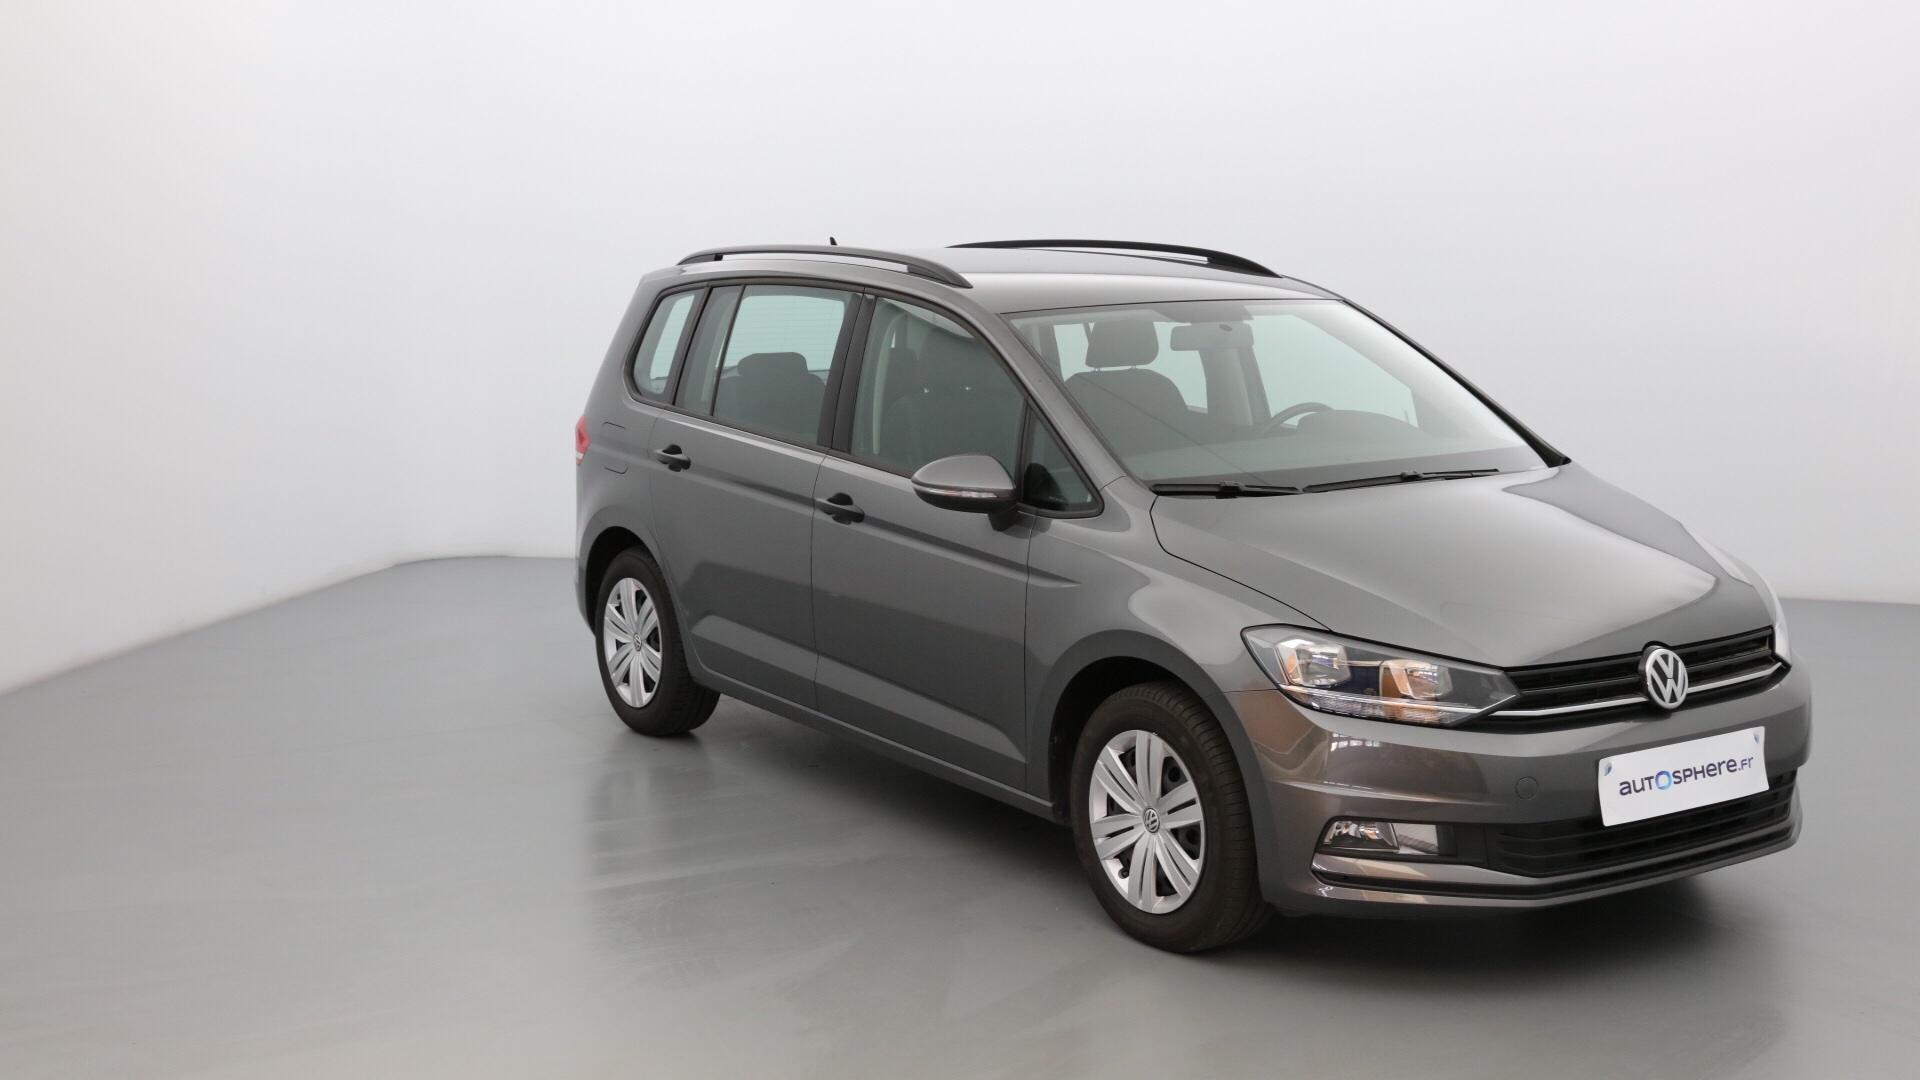 VOLKSWAGEN TOURAN 1.6 TDI 110CH BLUEMOTION TECHNOLOGY FAP TRENDLINE BUSINESS 5 PLACES - Miniature 3